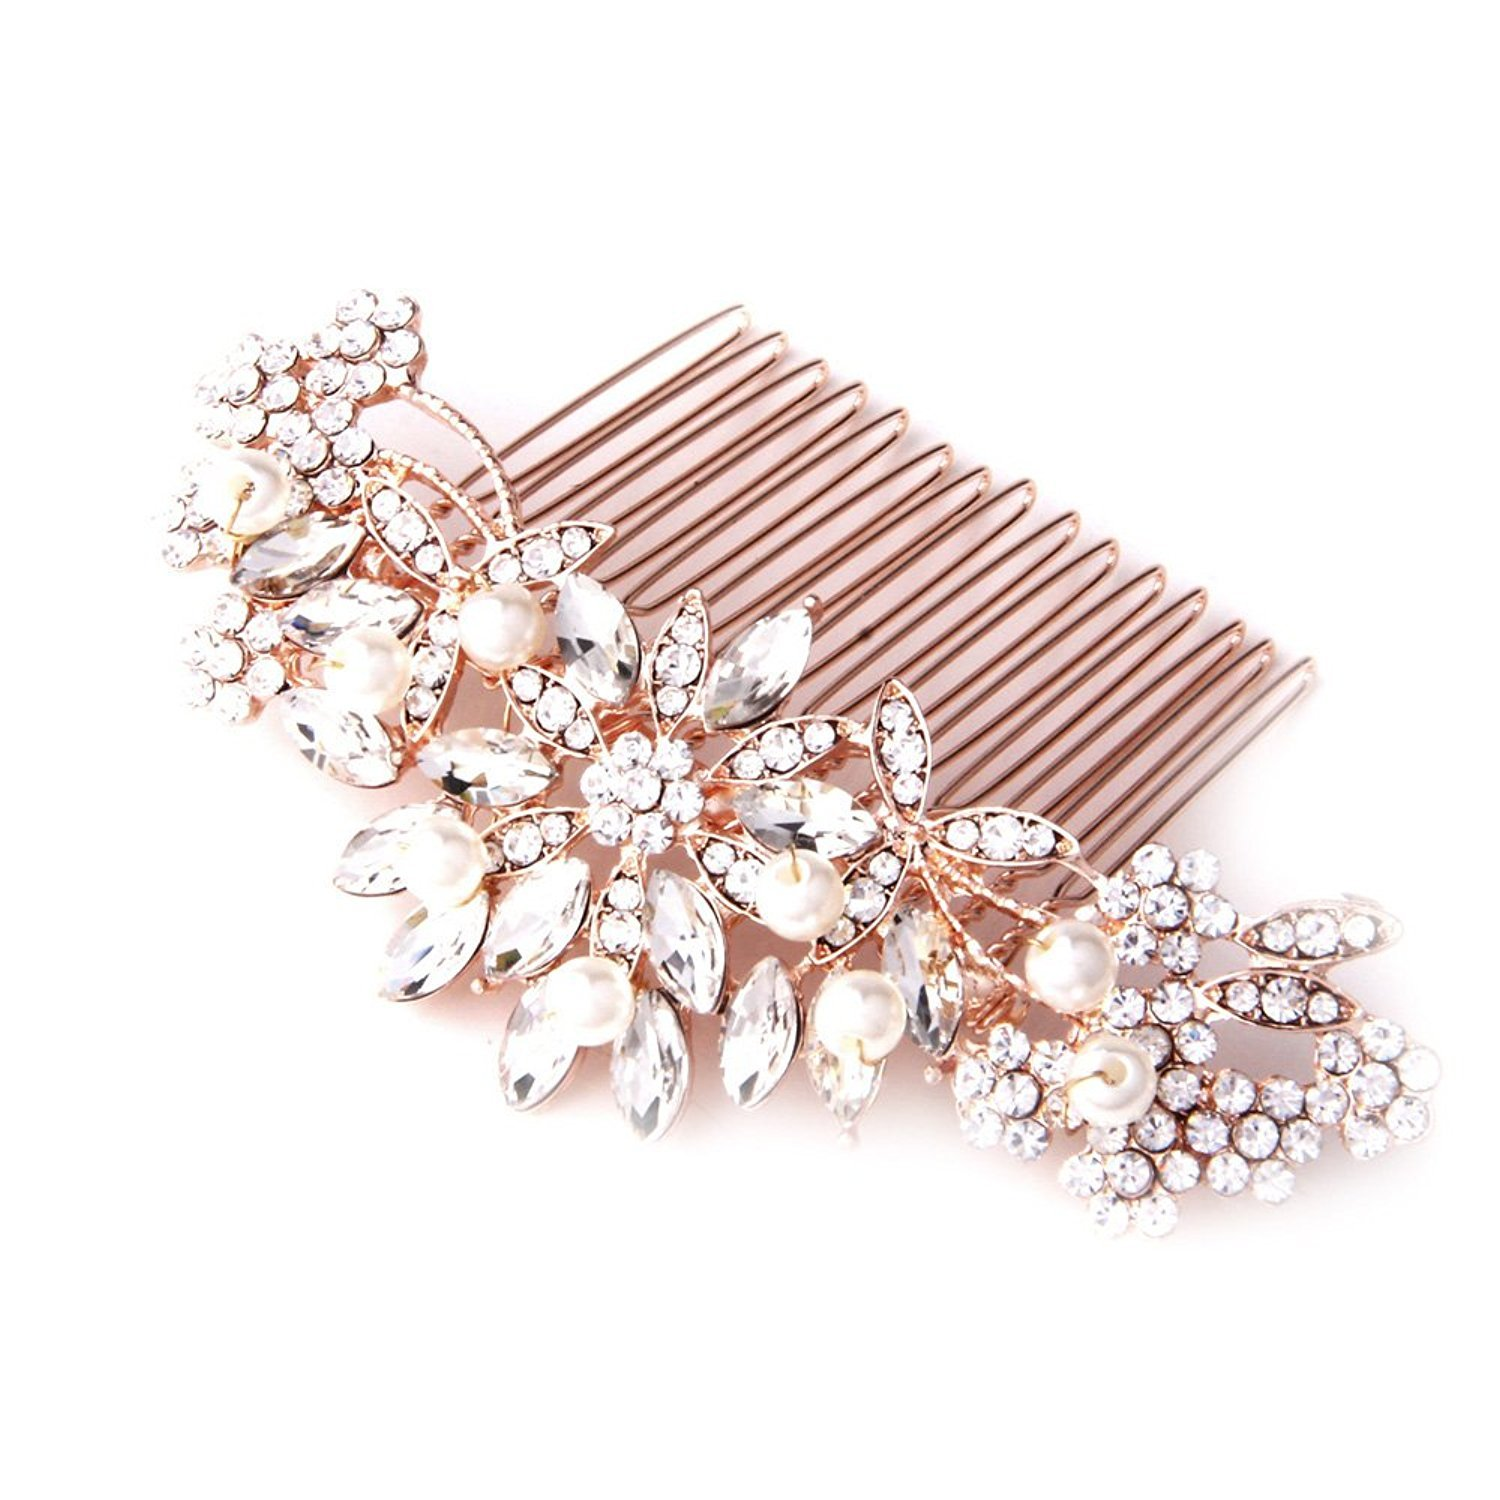 Fairy Moda Vintage Pearl Crystal Bridal Hair Accessories Rose Gold Hair Comb for Brides Wedding FM4791E